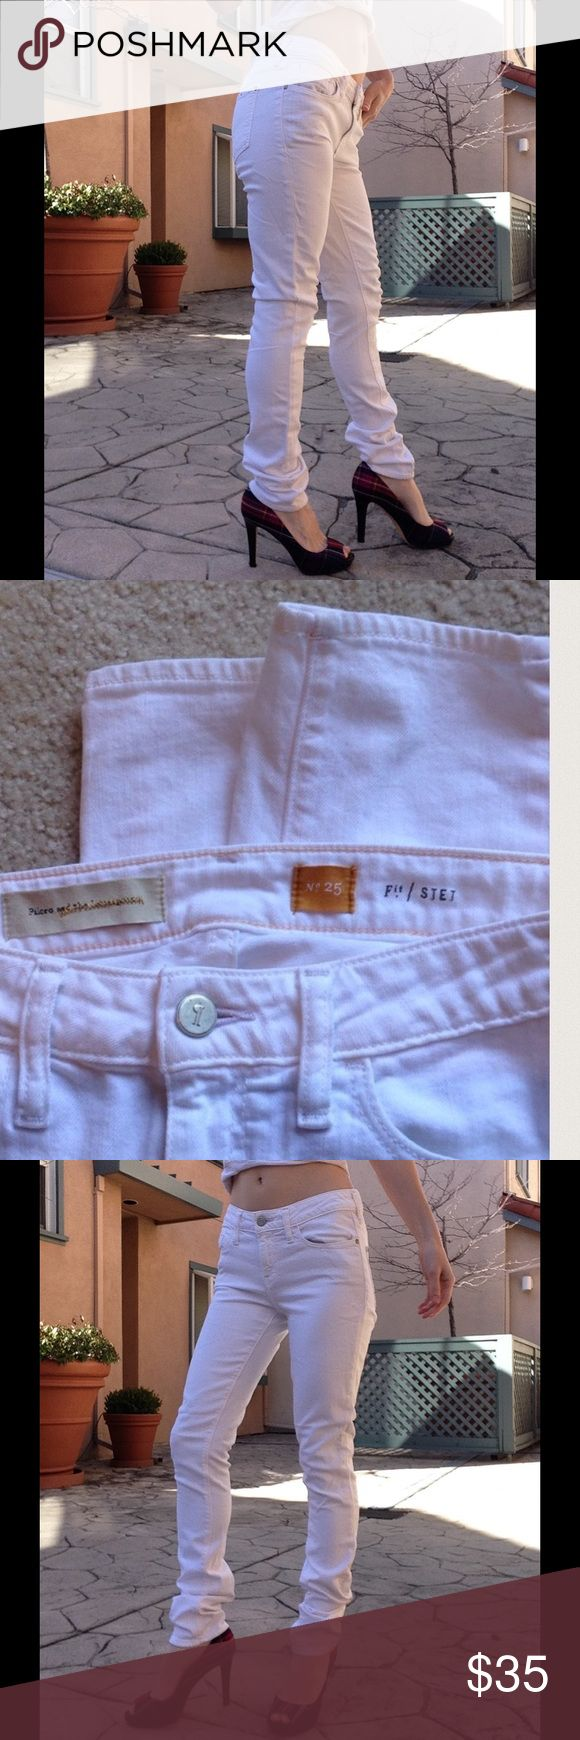 "Anthropologie Pilcro White Skinny Denim Long Jean Excellent condition. There are no stains or reps. Please come from a smoke free home. The fabric is 94% cotton and 5% polyester 1% spandex. Made in Guatemala. On back it says Fit/STET. Measurements laying flat: Waist 14"" Inseam 31.5"" Pants A. Pink Box. Anthropologie Jeans Skinny"